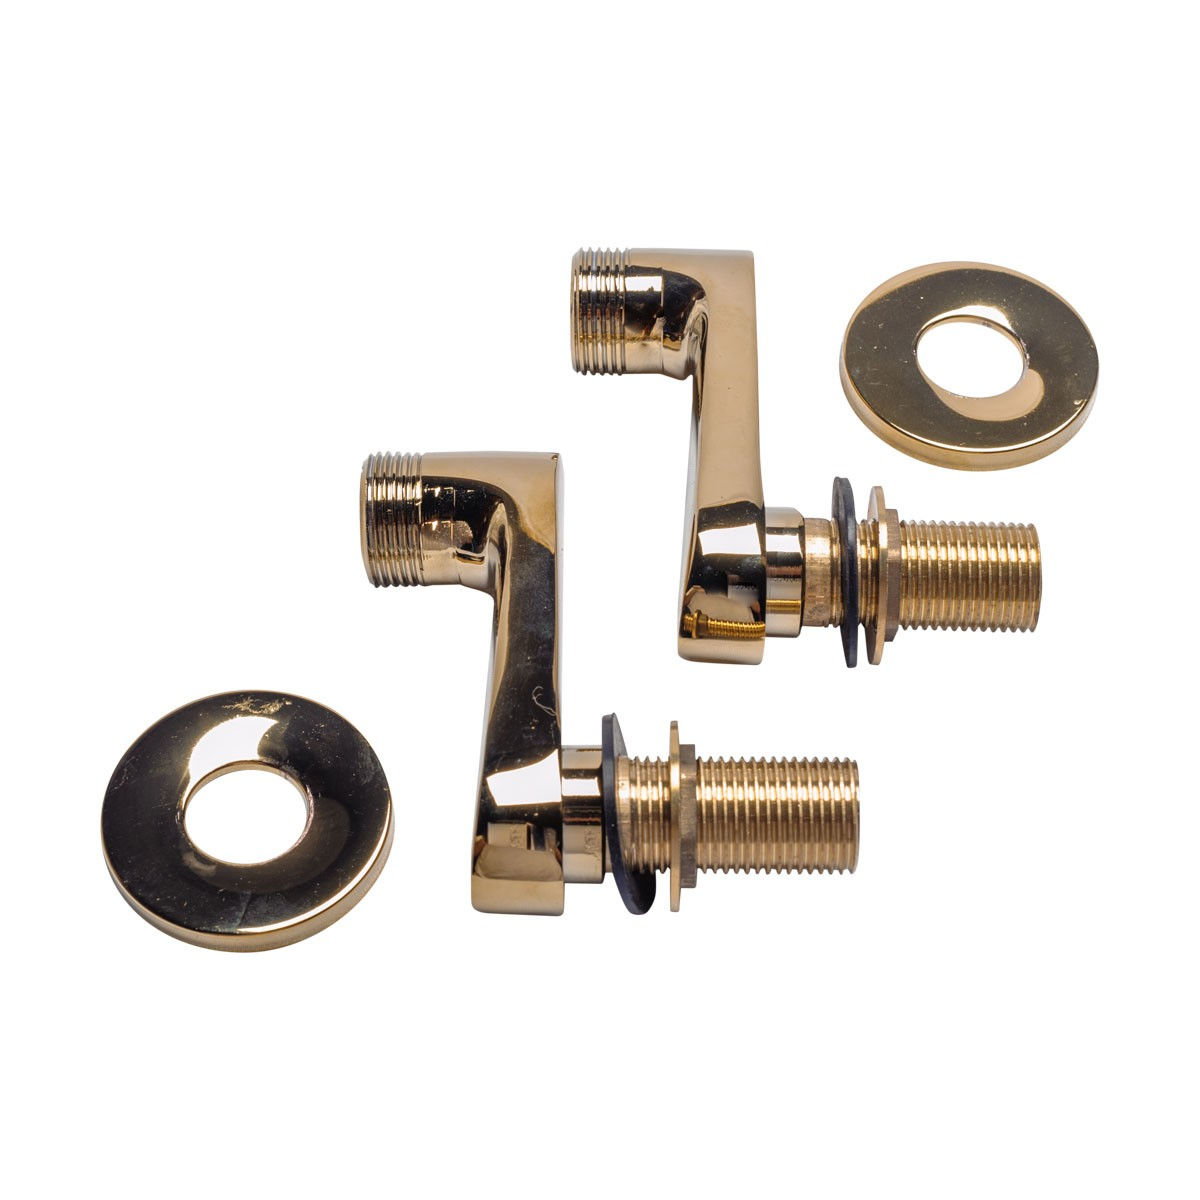 Swing Arm Coupler Wall Mount Tub Faucet Parts